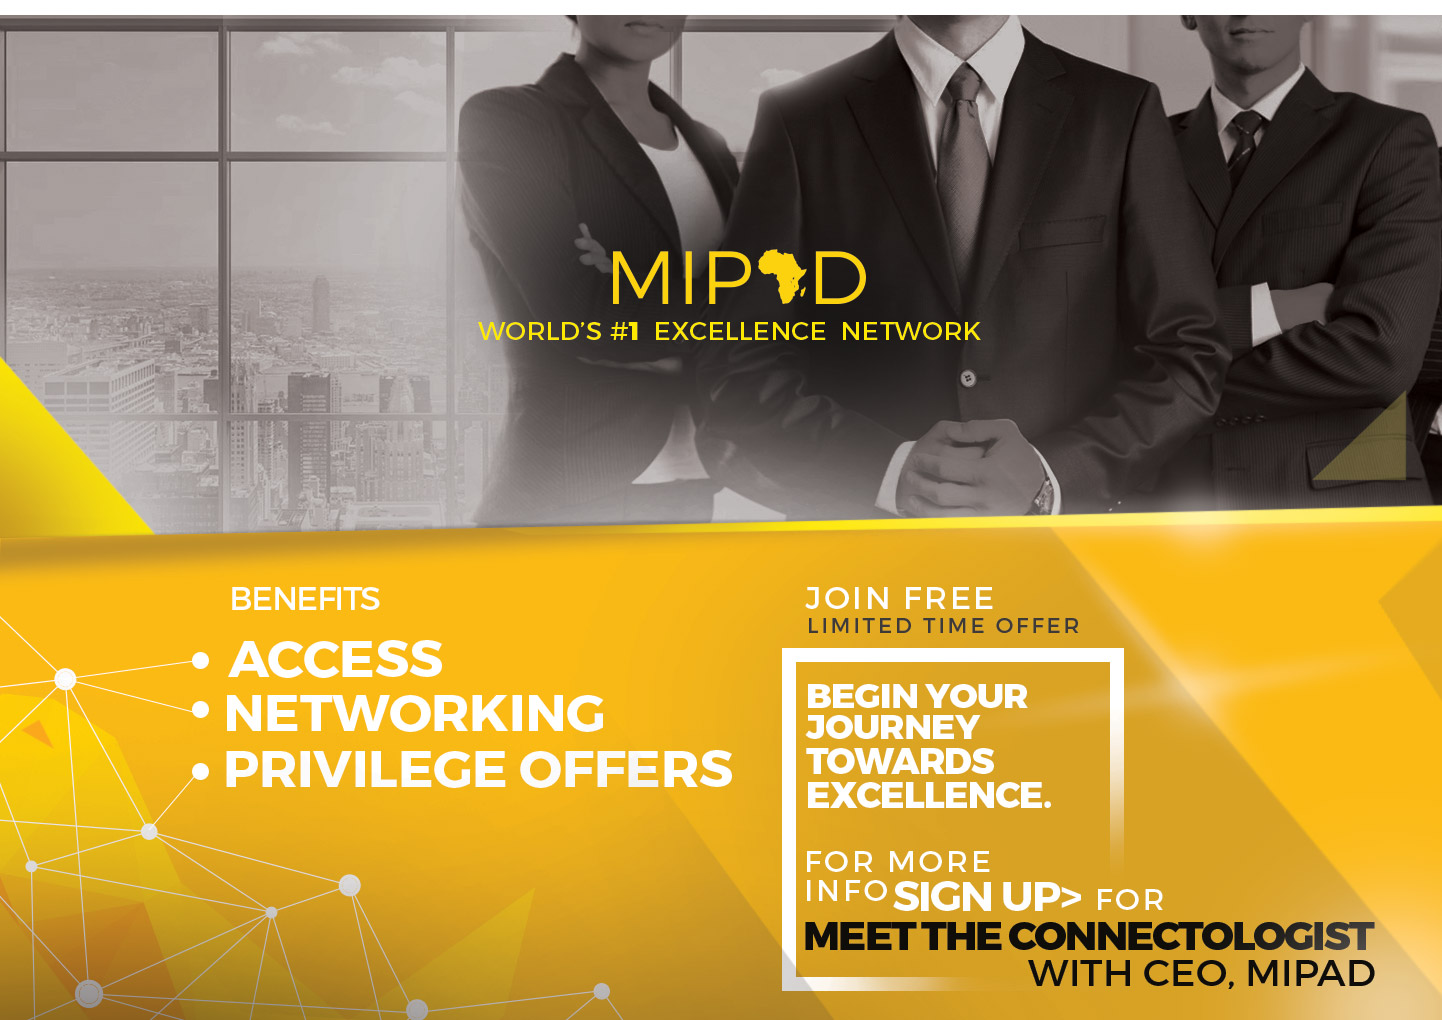 MIPAD Global Network Benefits